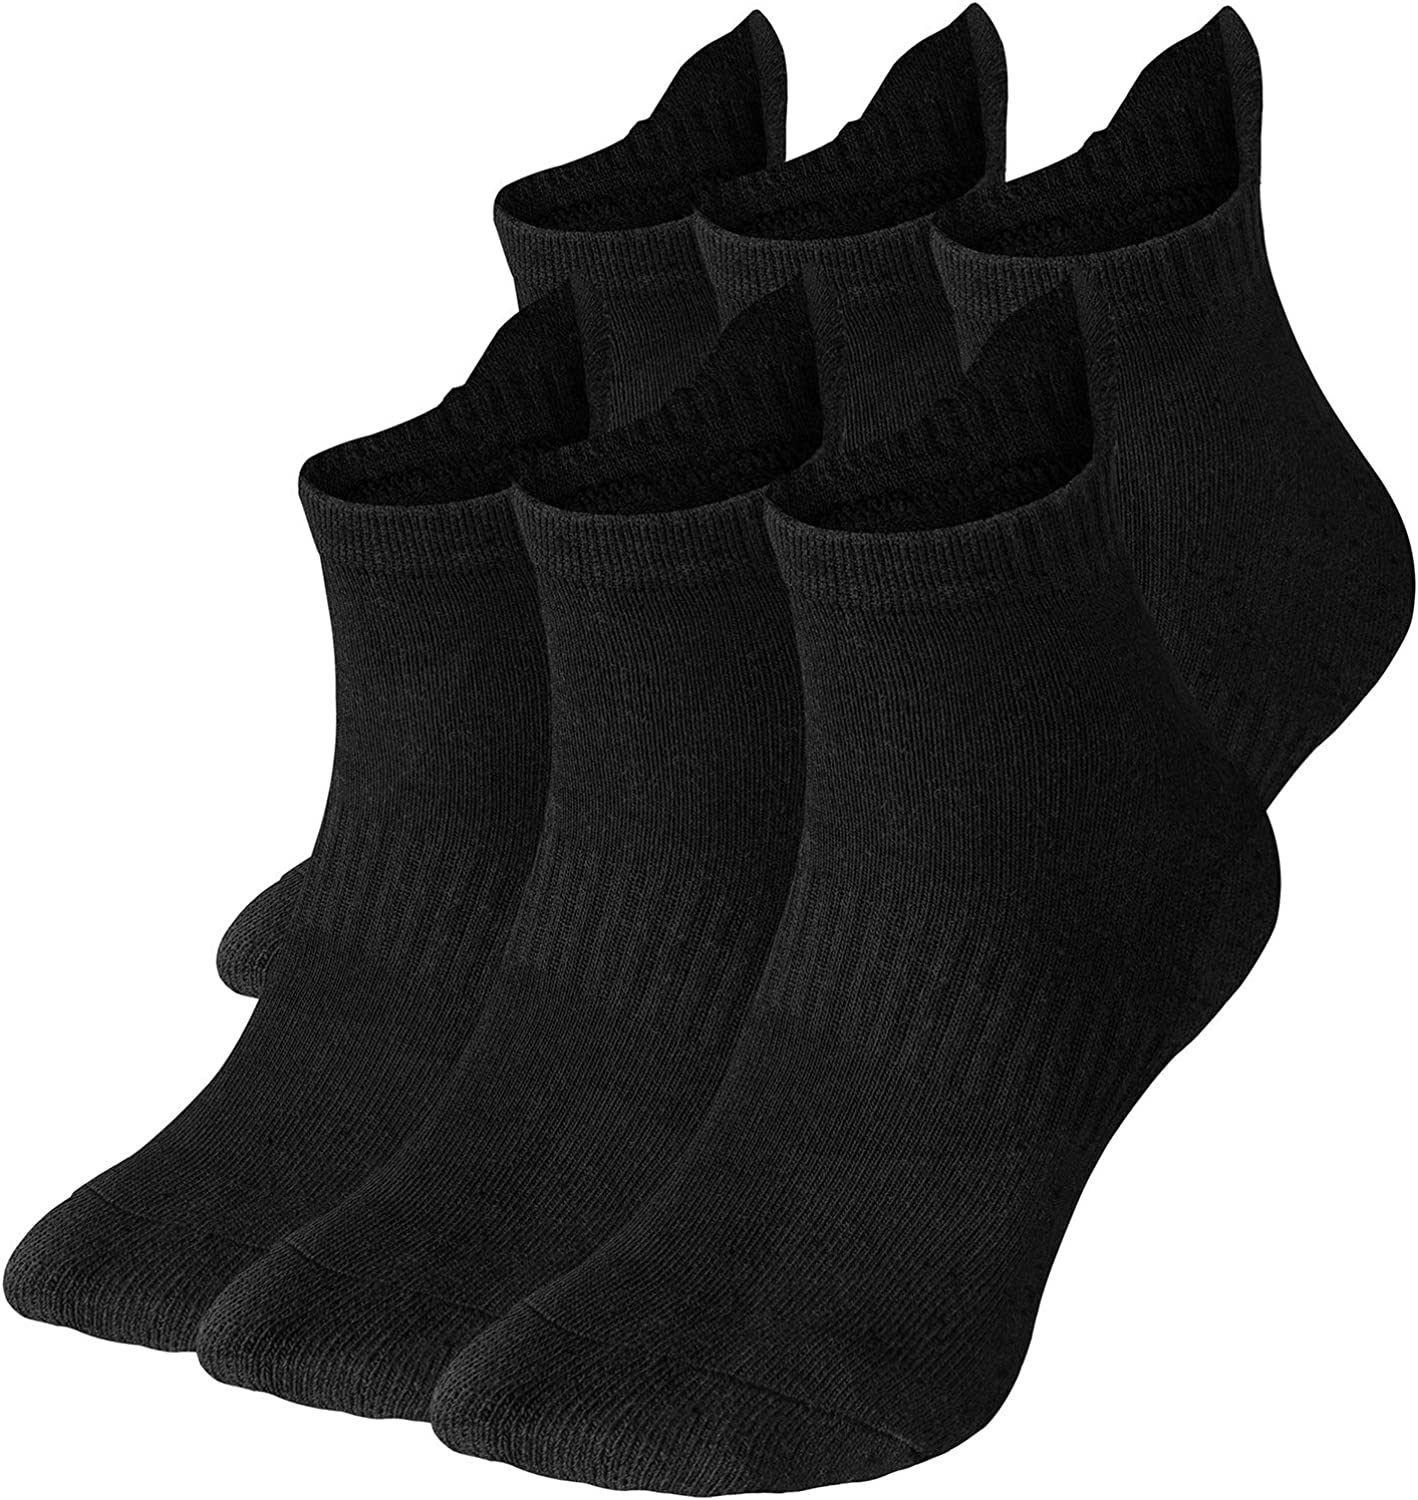 6 Pairs Men Women Size 10-13 Sports Socks Crew Ankle Low Cut Lot Stretch Running